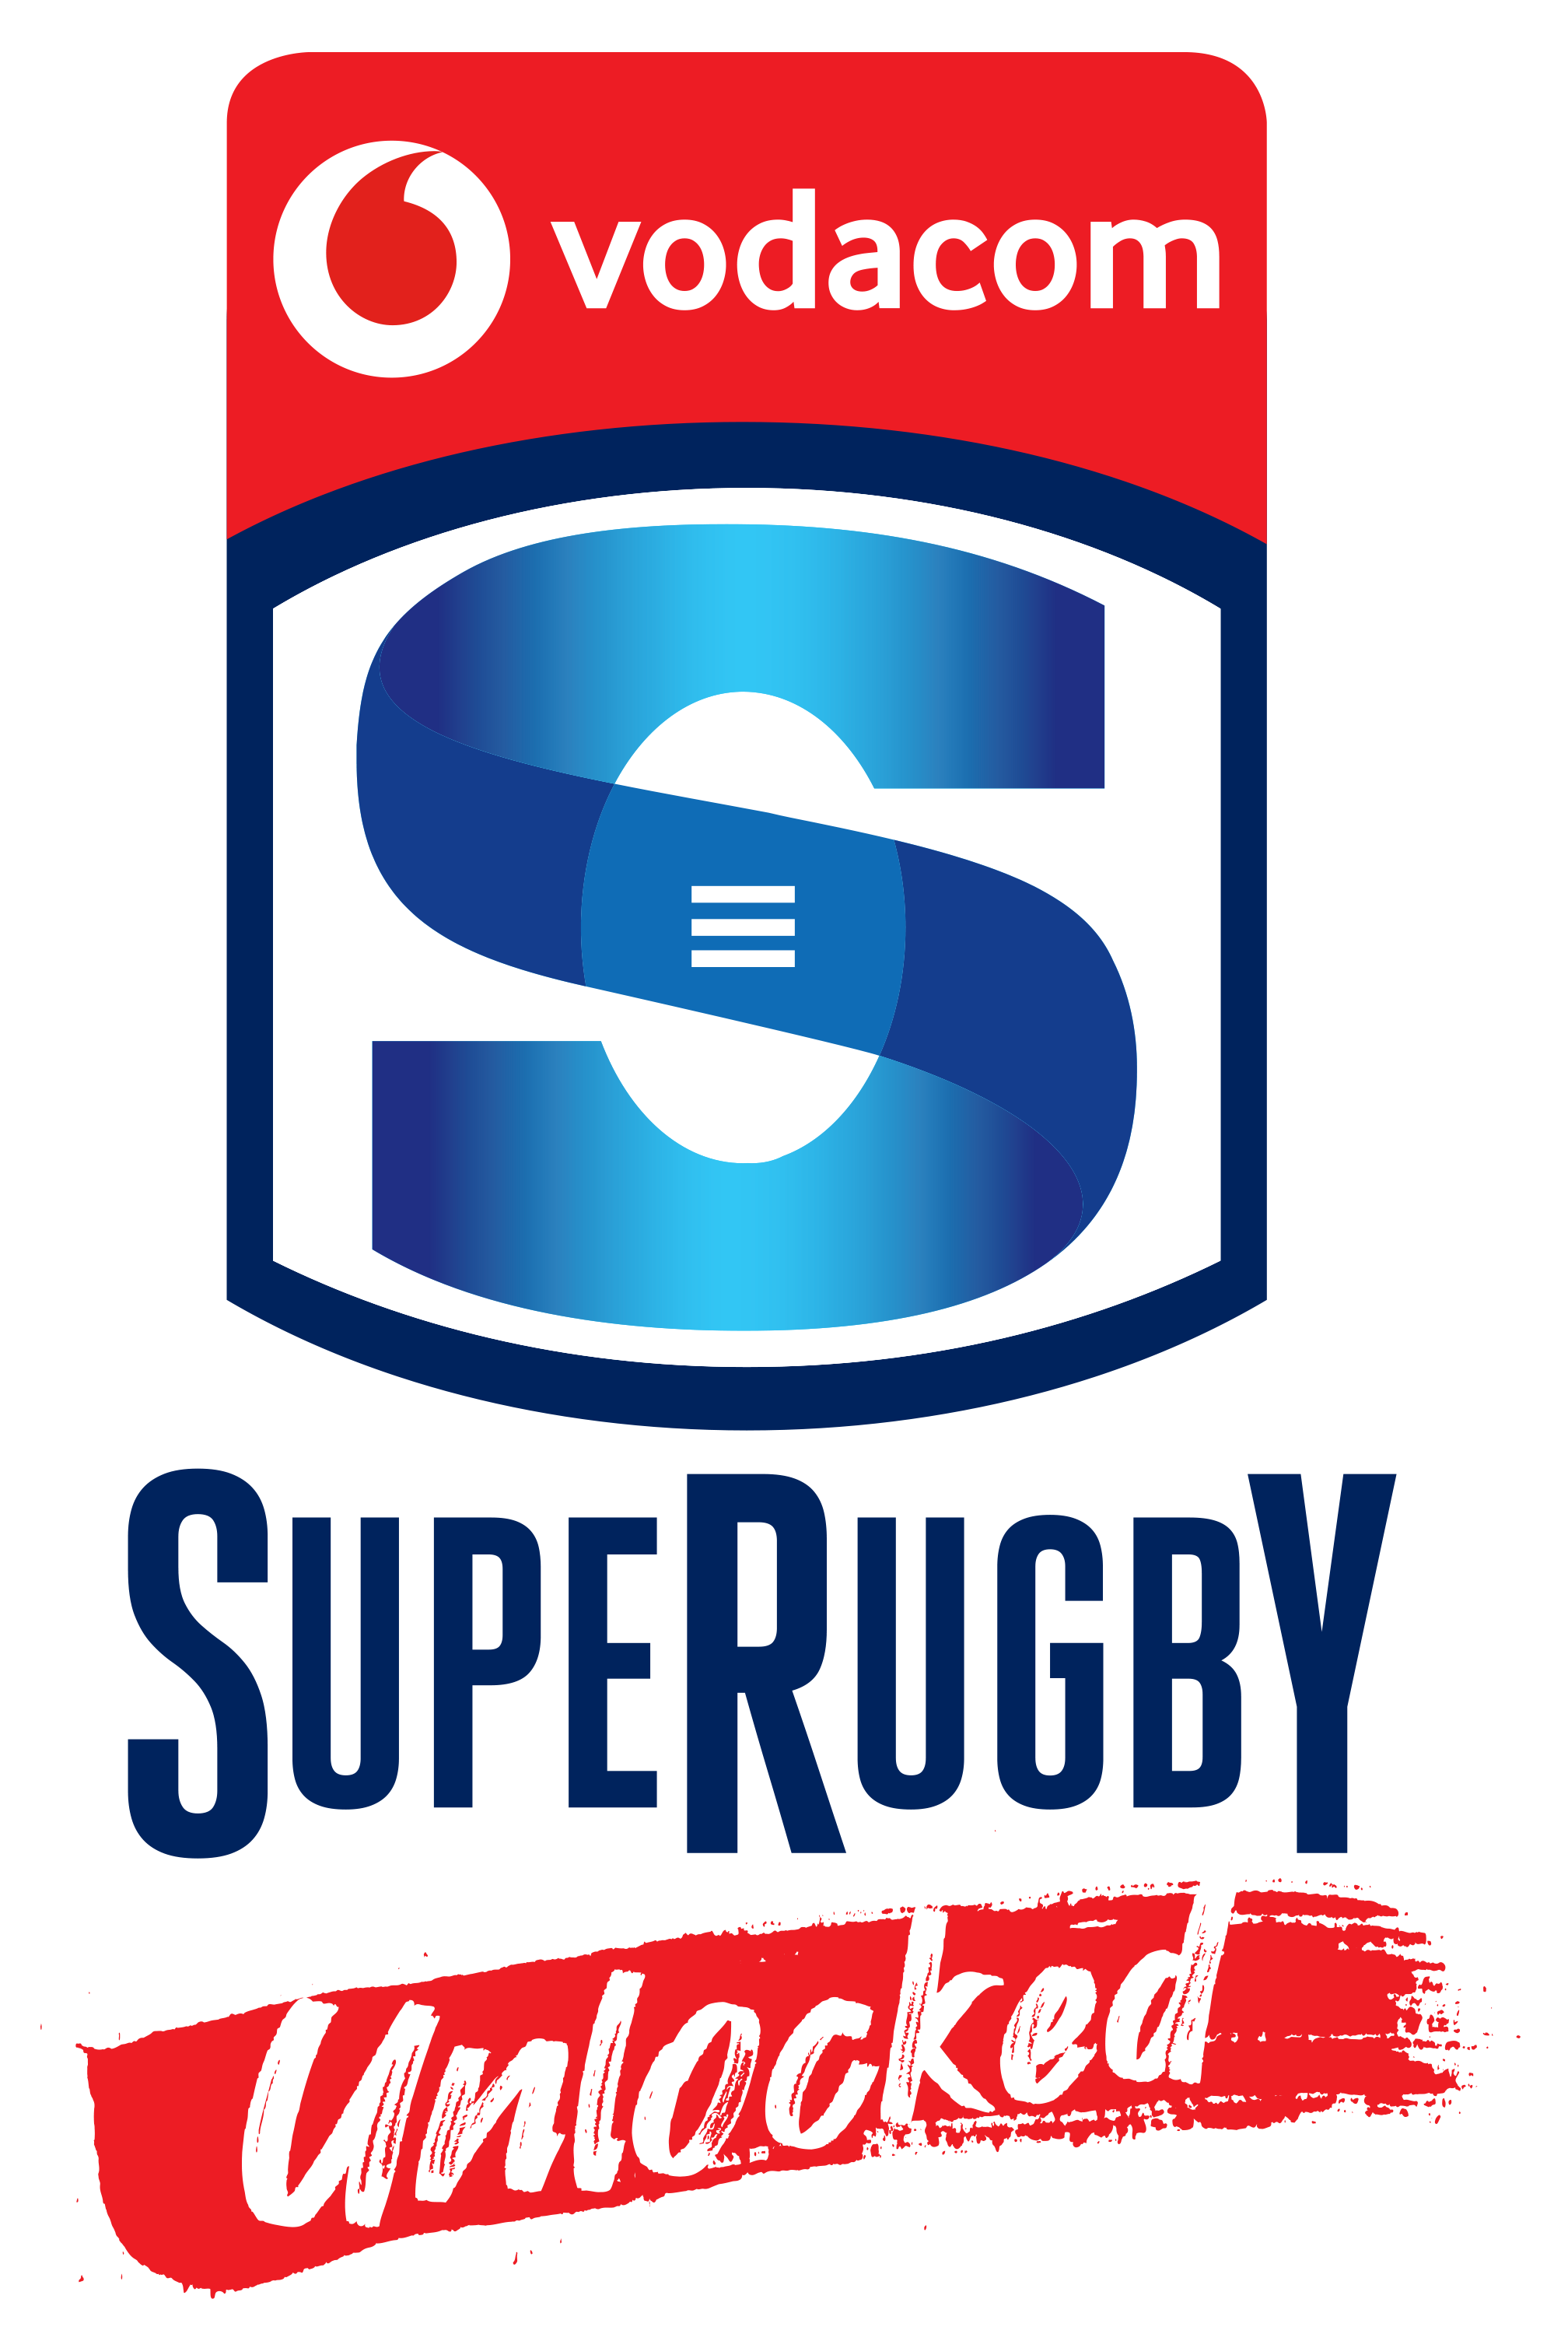 VODACOM SUPER RUGBY UNLOCKED